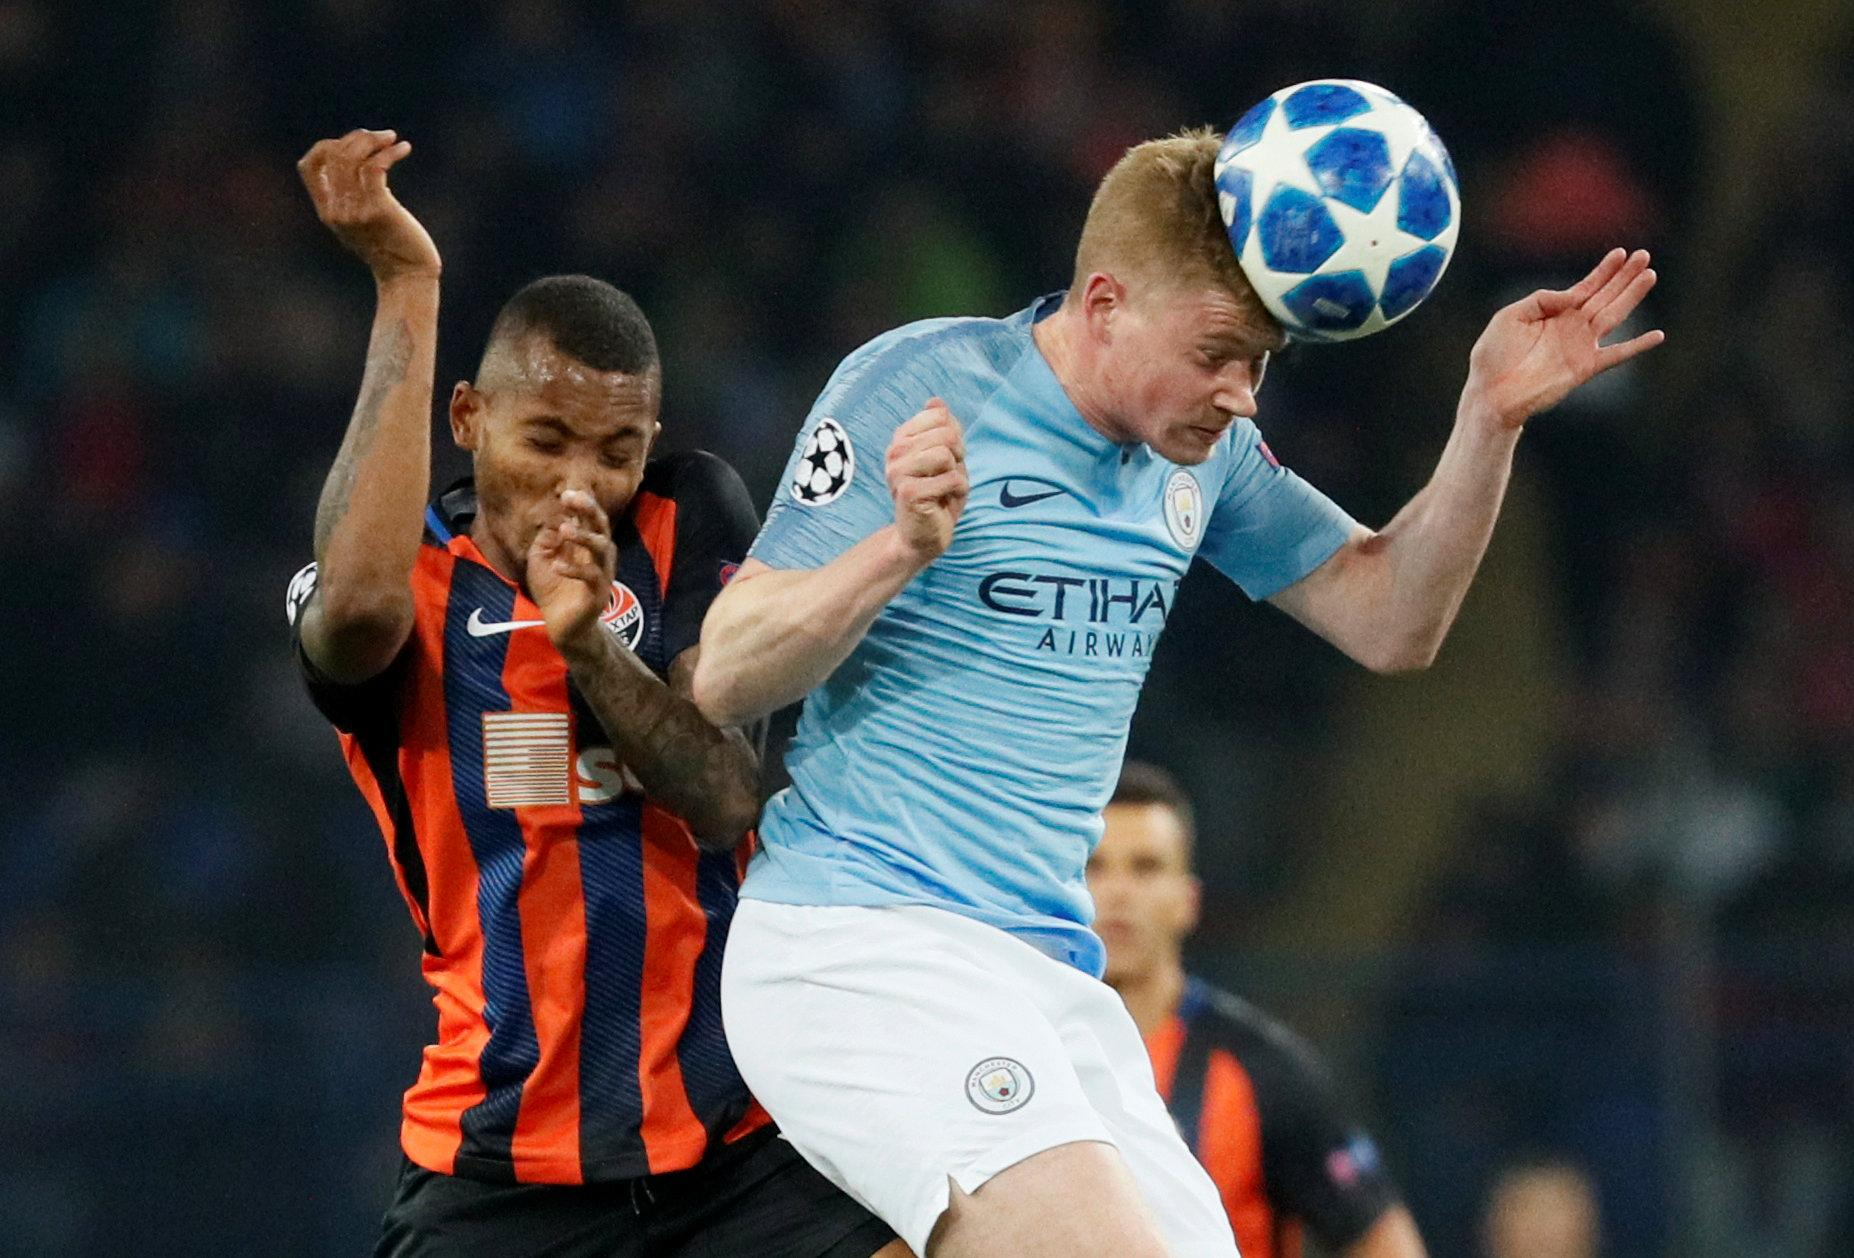 De Bruyne is back in the Manchester City team after missing the start of the season with injury